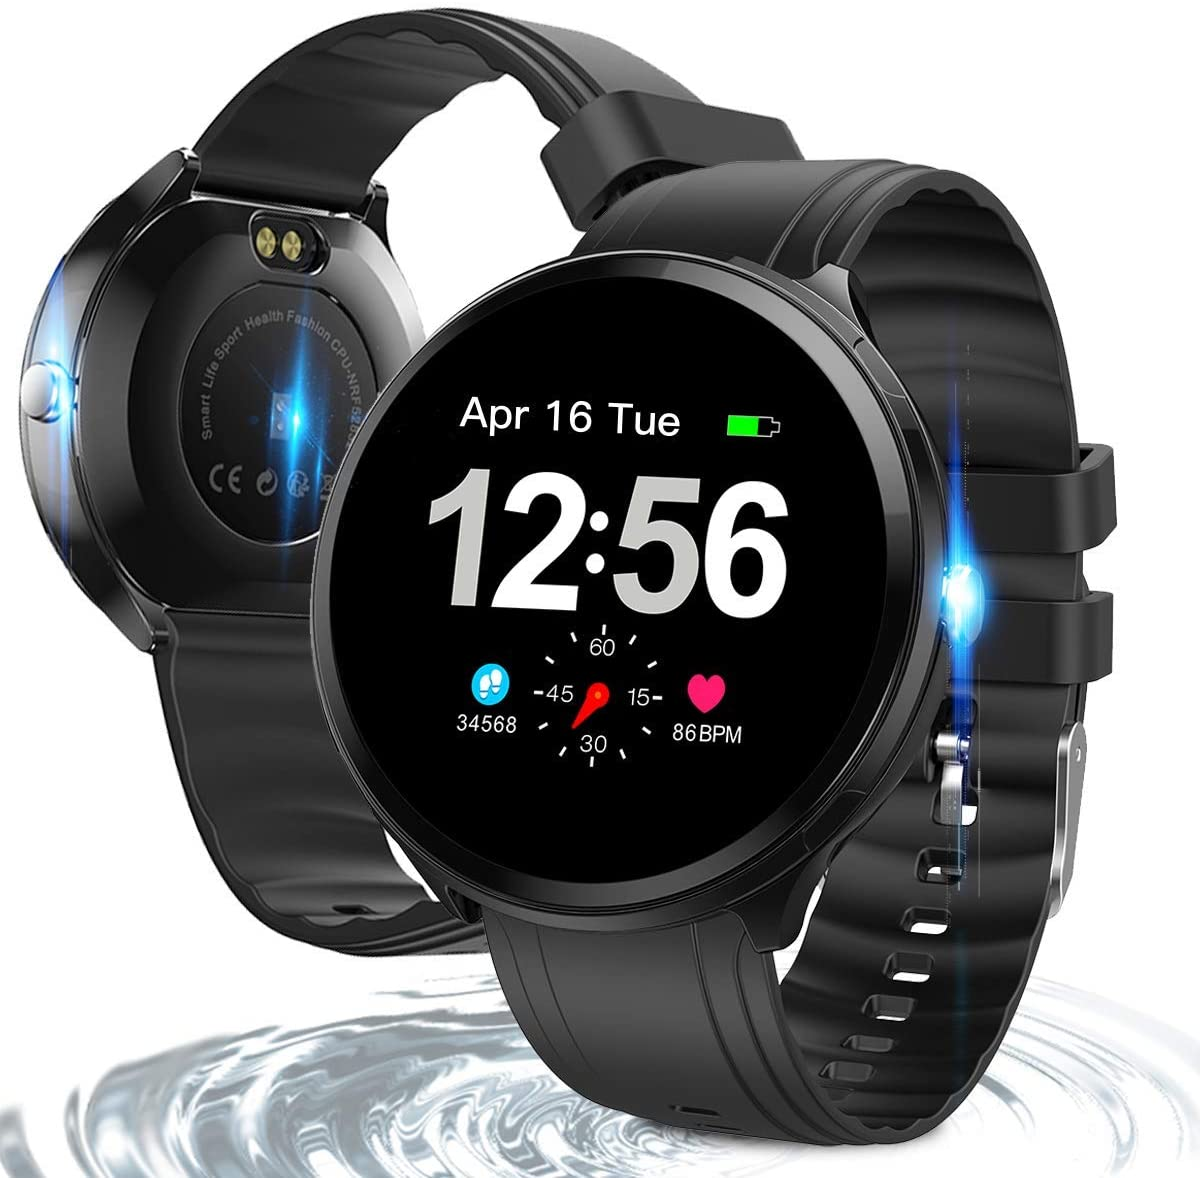 Fitness Tracker, Activity Tracker Fitness Watch with Heart Rate Monitor, IP67 Waterproof Smart Watch with Sleep Monitor, Pedometer,Music Control